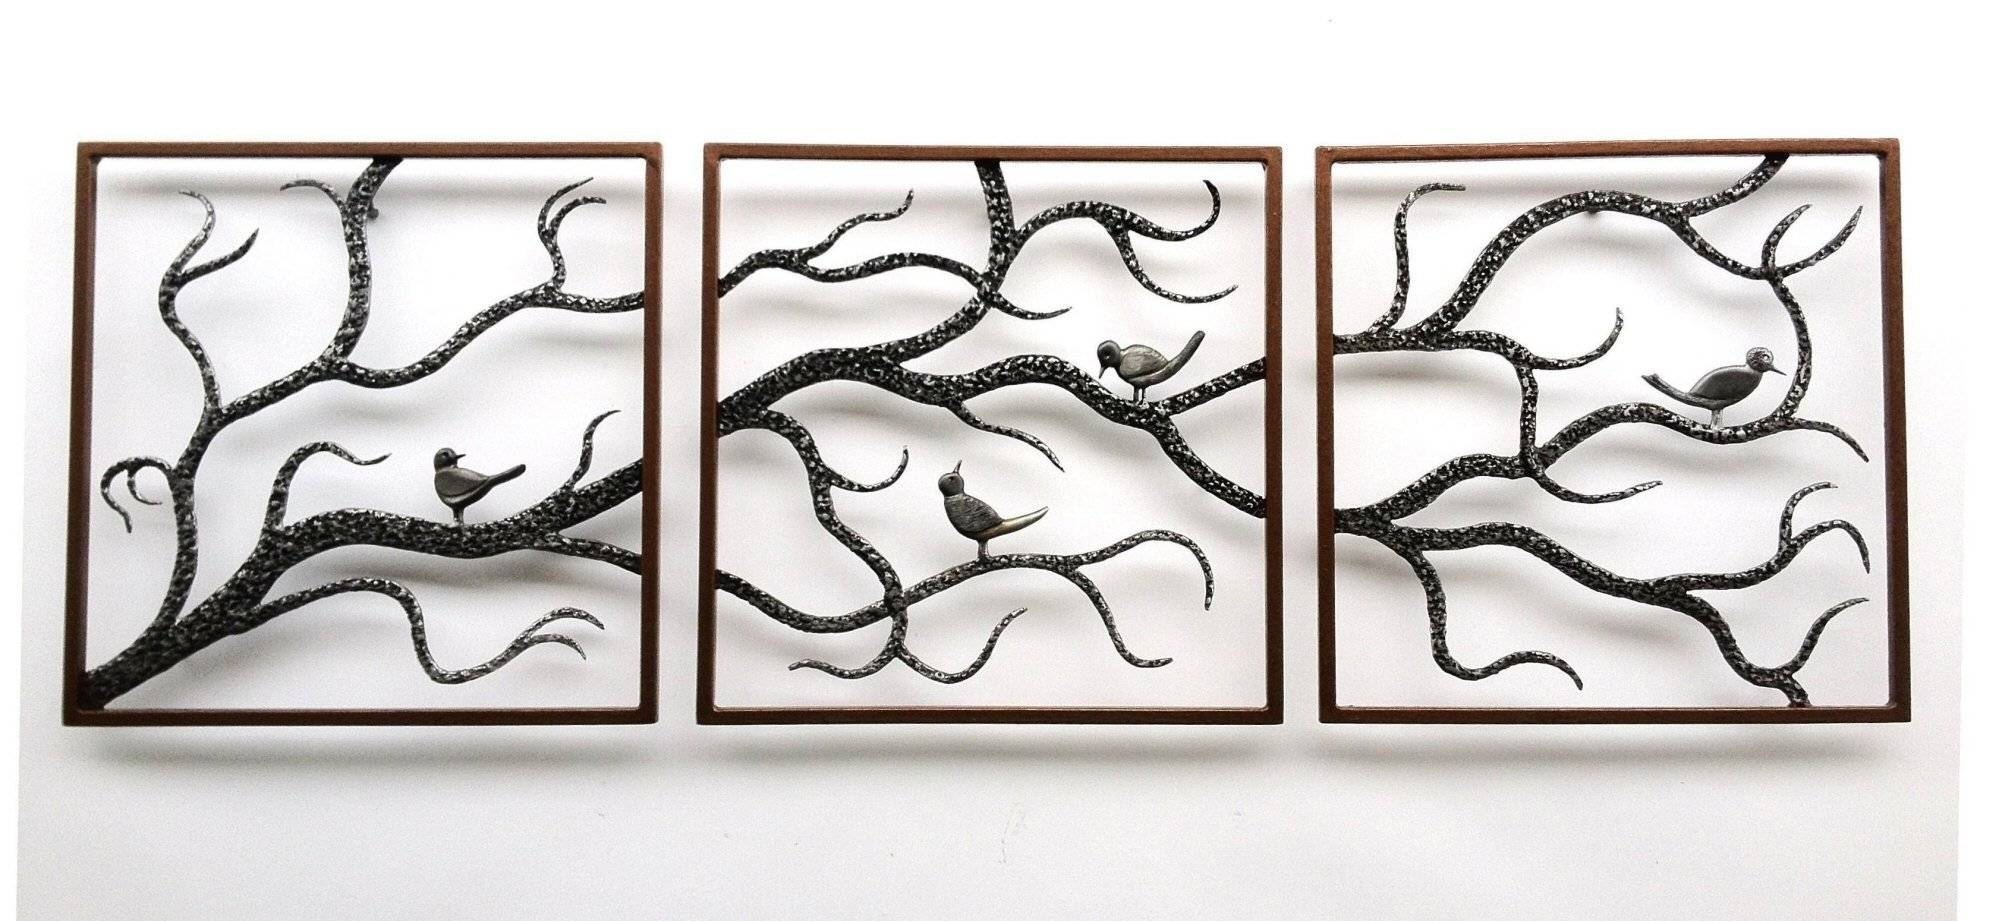 Wall Art Designs: Metal Wall Art Trees Birch Three Framed Cute For Most Popular Large Metal Wall Art Sculptures (View 19 of 20)